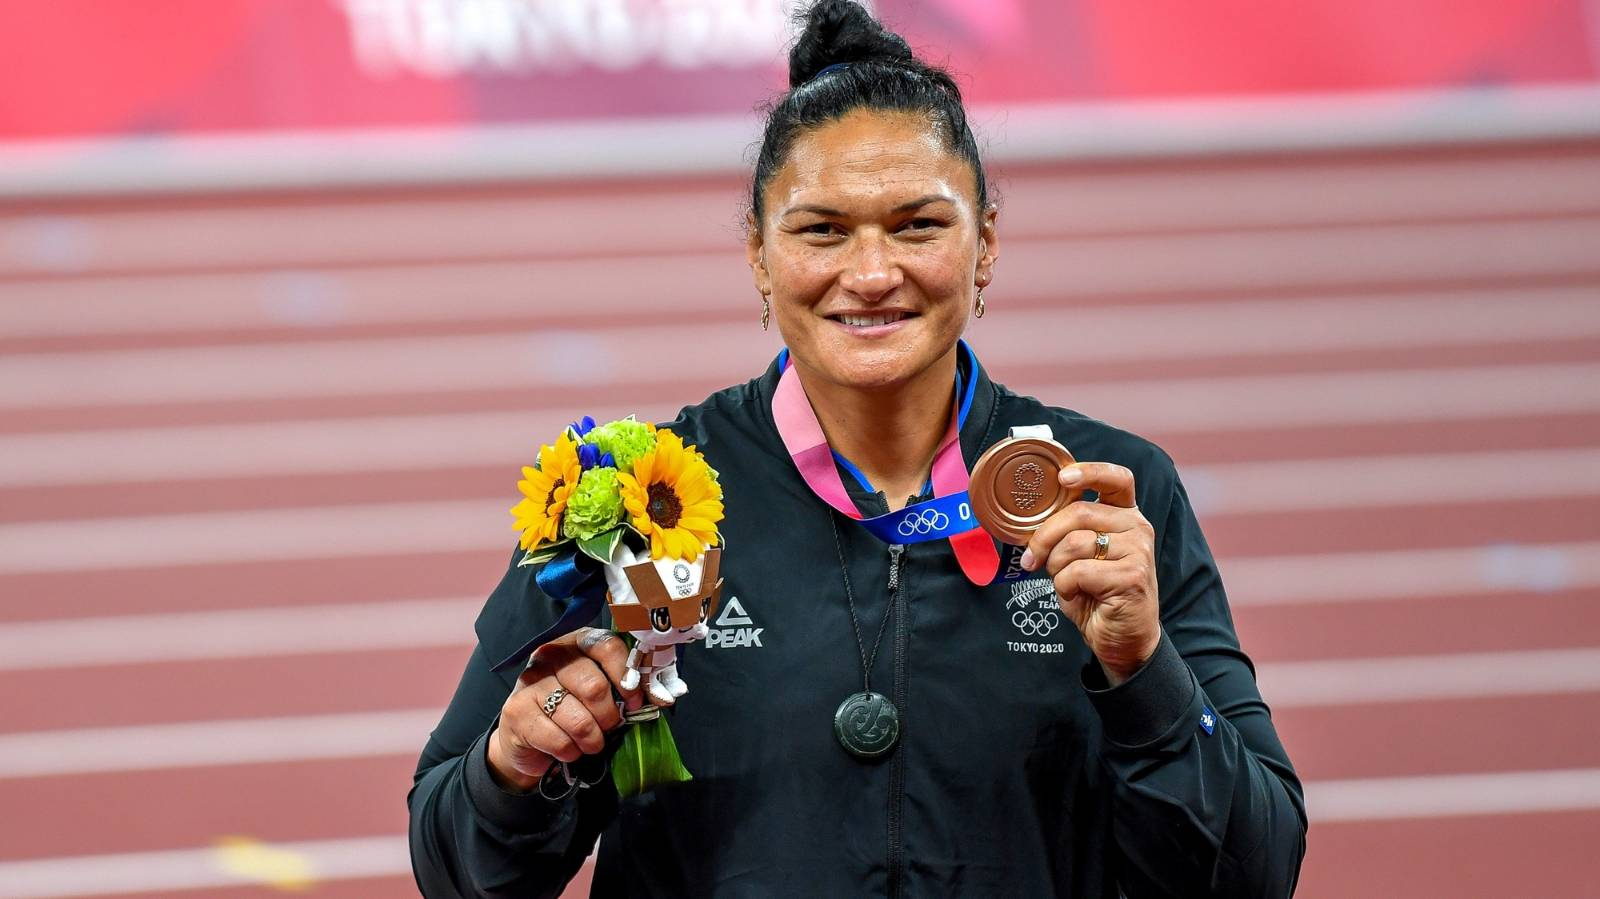 Bronze finish but gold standard: Valerie Adams just glad to bow out an inspiration